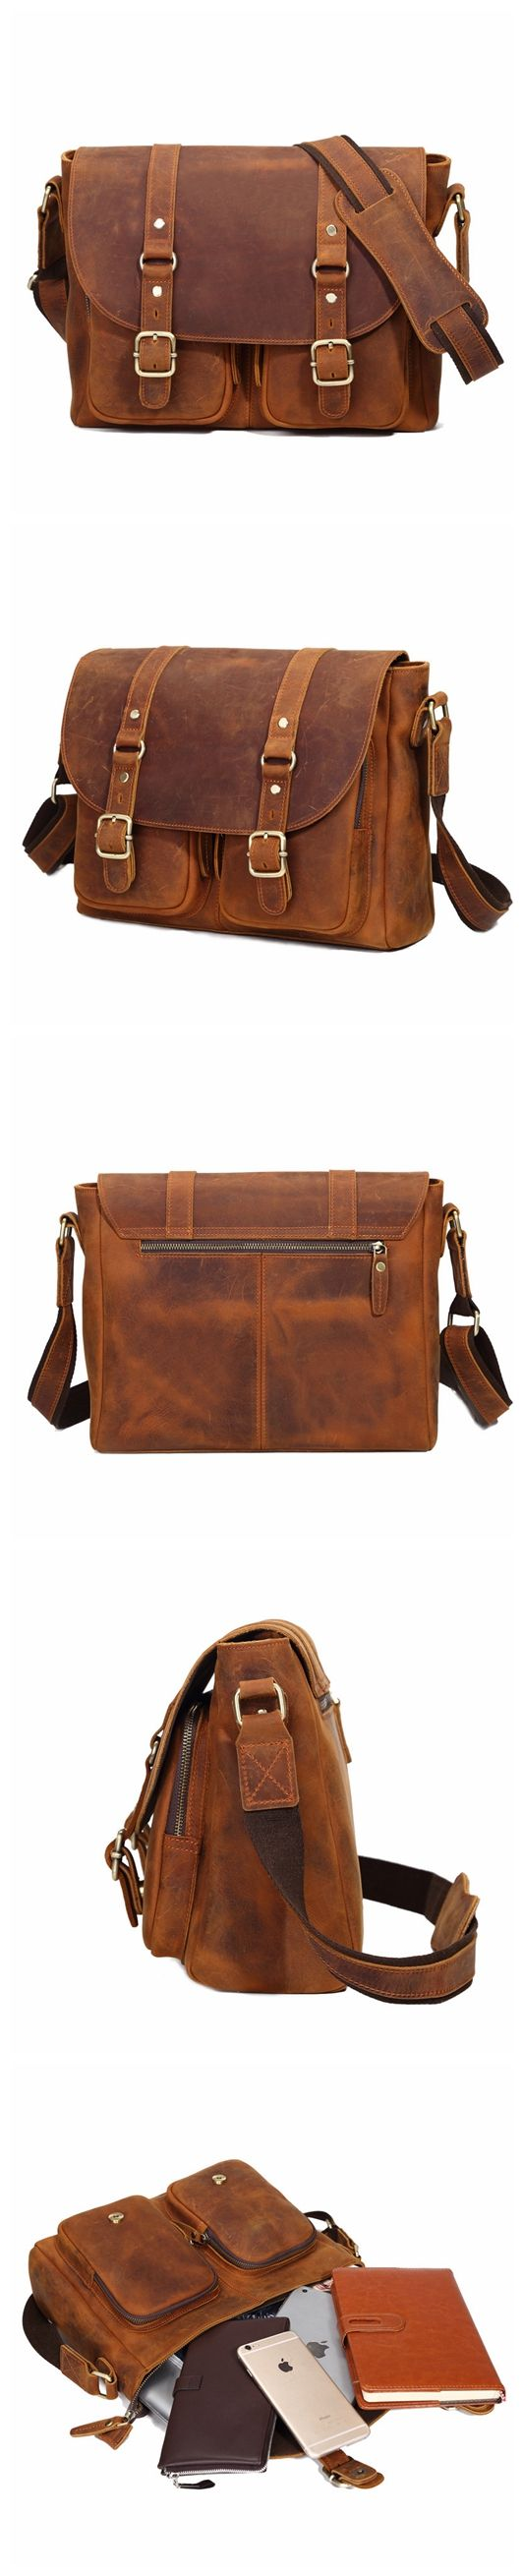 ROCKCOW Handmade Brown Leather Satchel Bag For Men, Messenger Shoulder Bag 8652